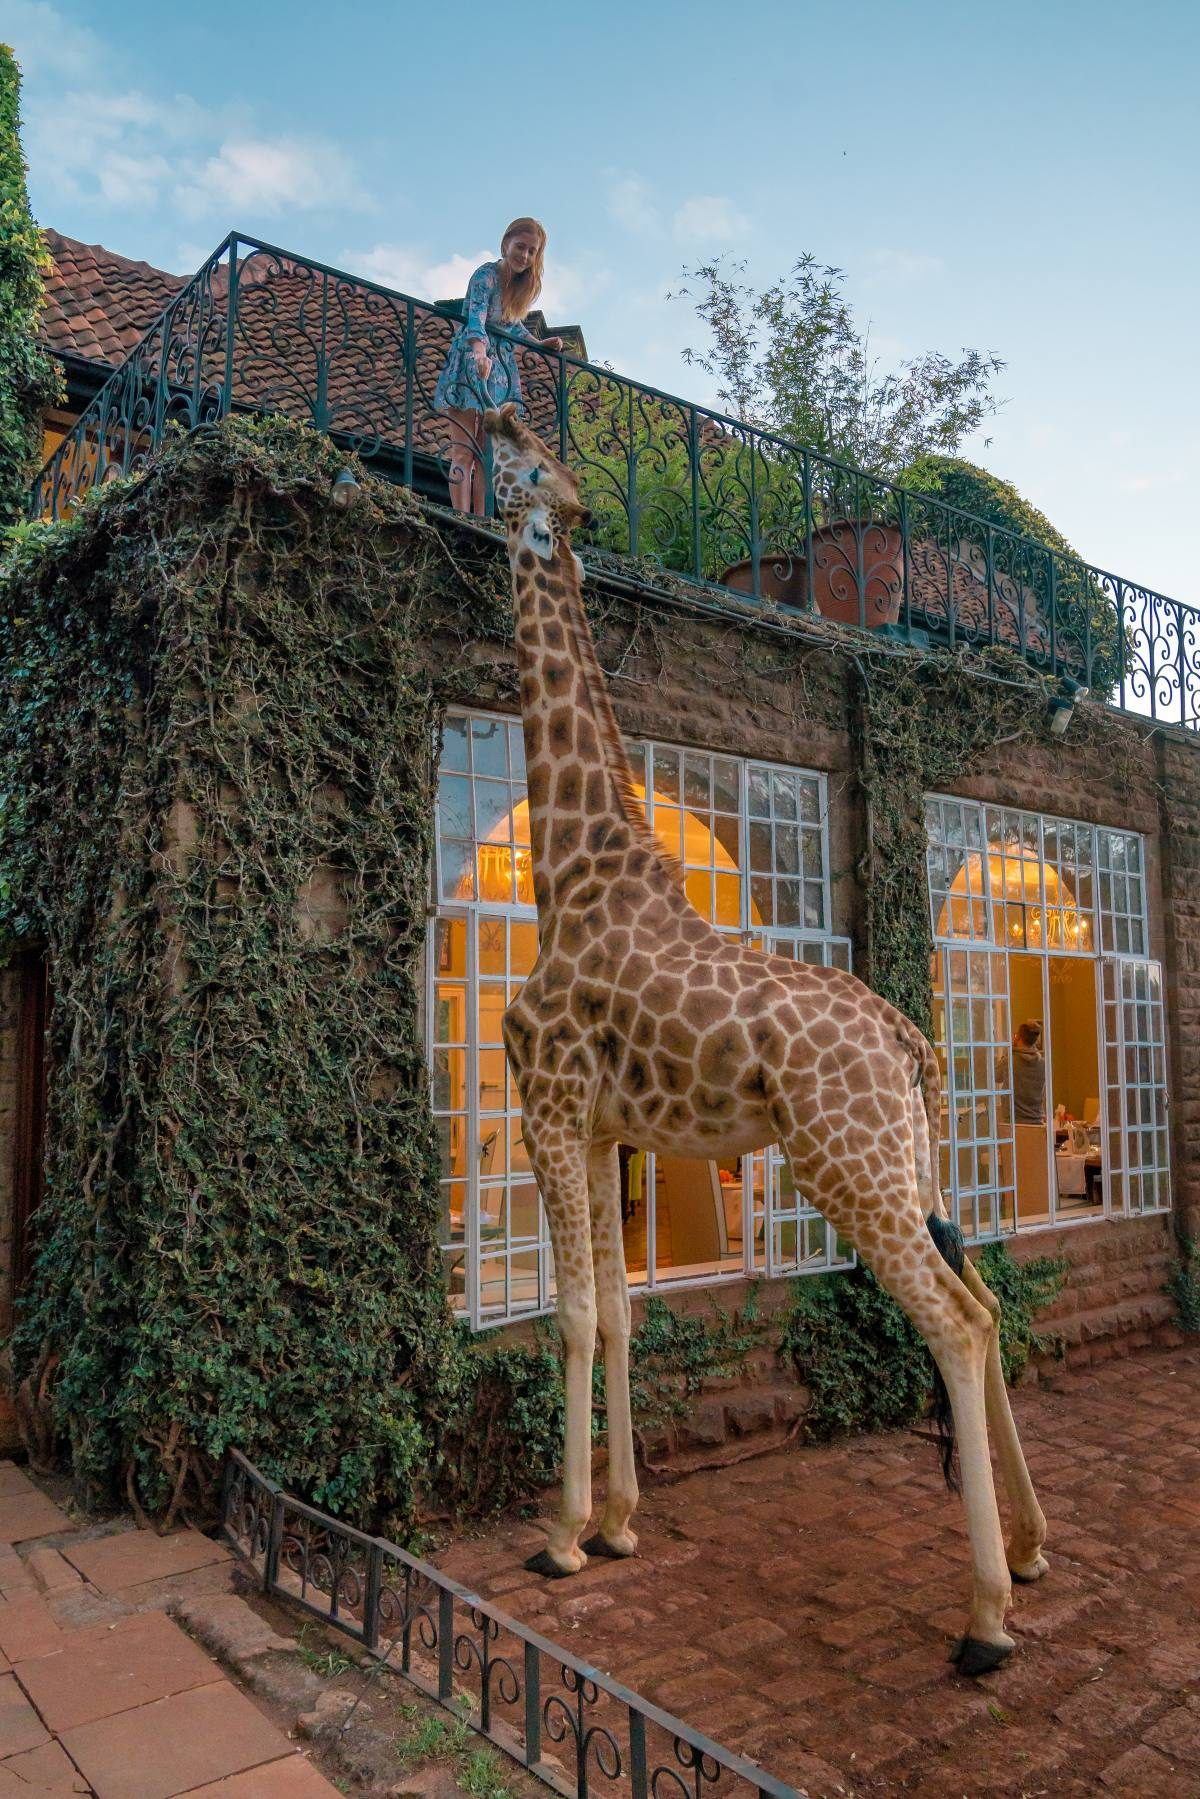 morning at giraffe manor